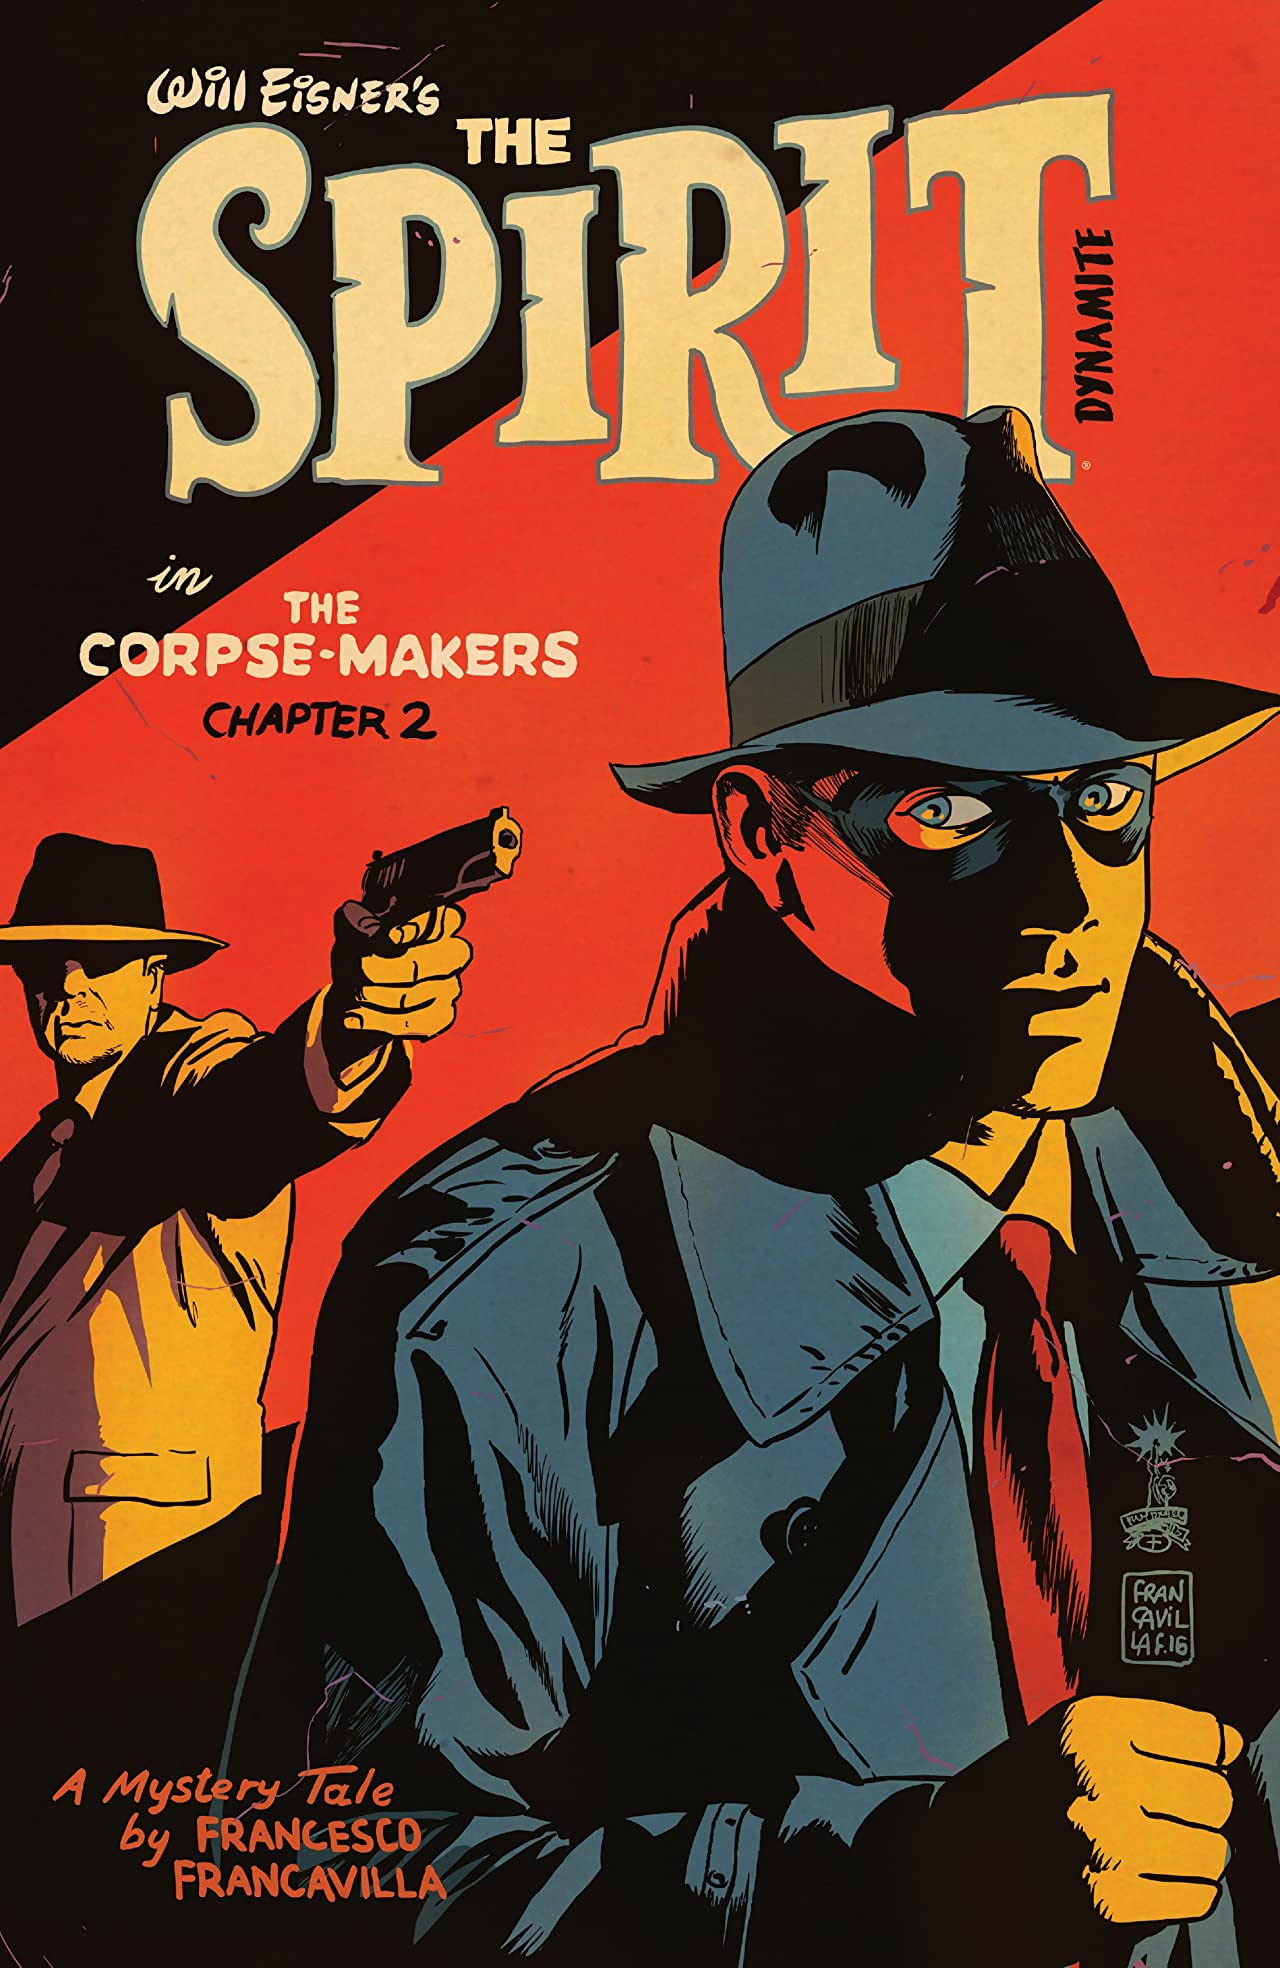 Will Eisner's The Spirit: The Corpse-Makers #2